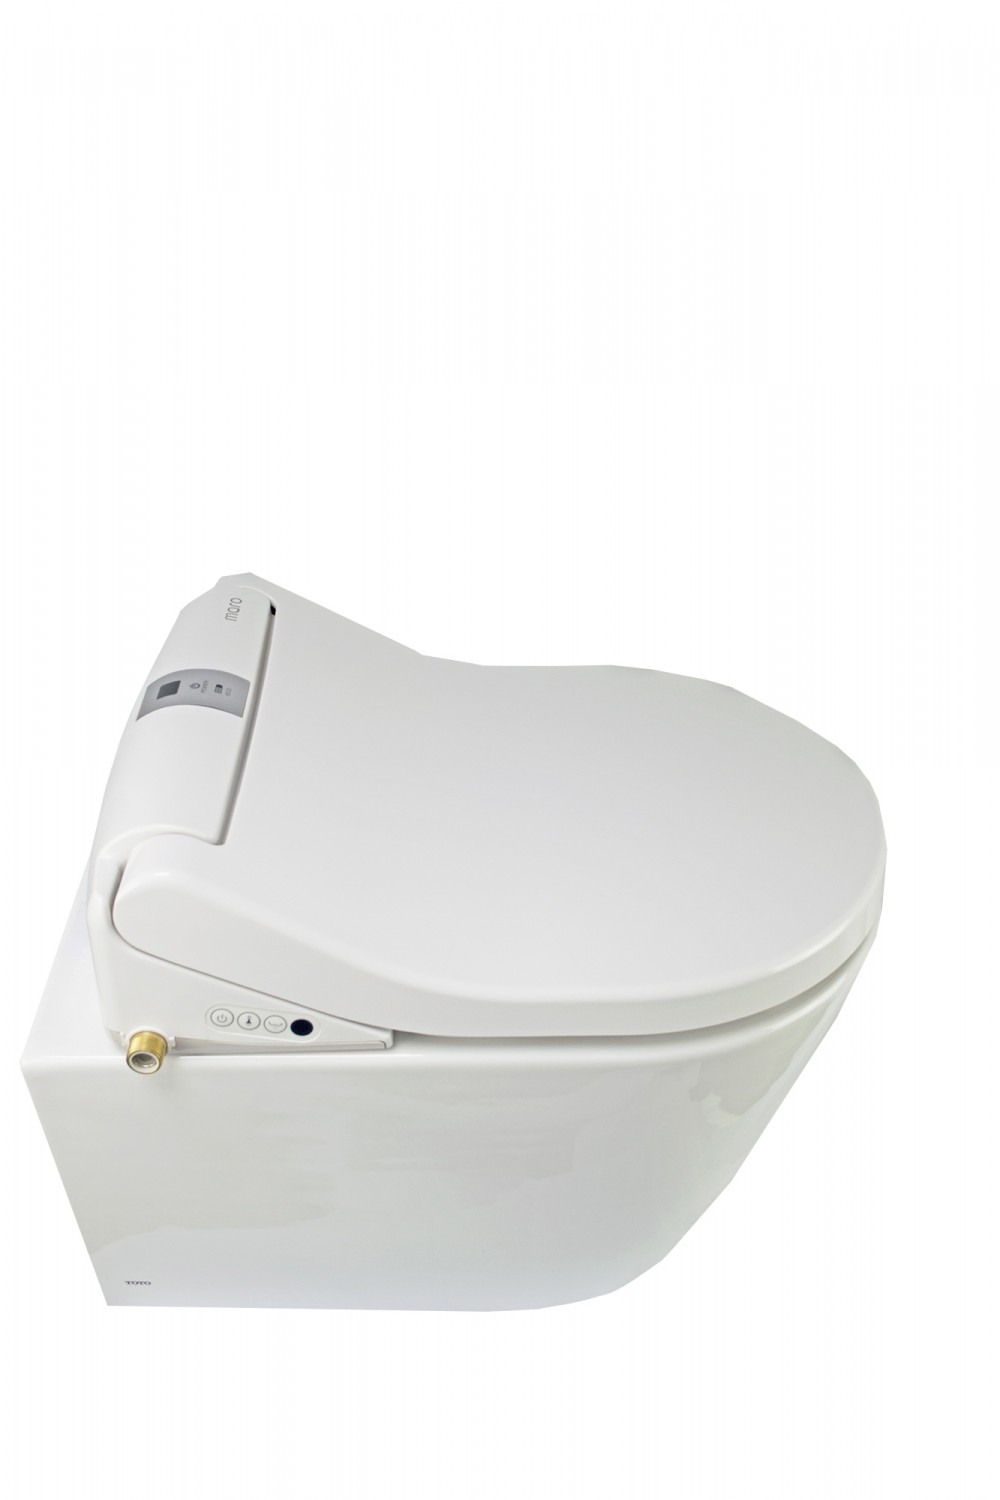 Toilet shower maro toto rp rimless washlet